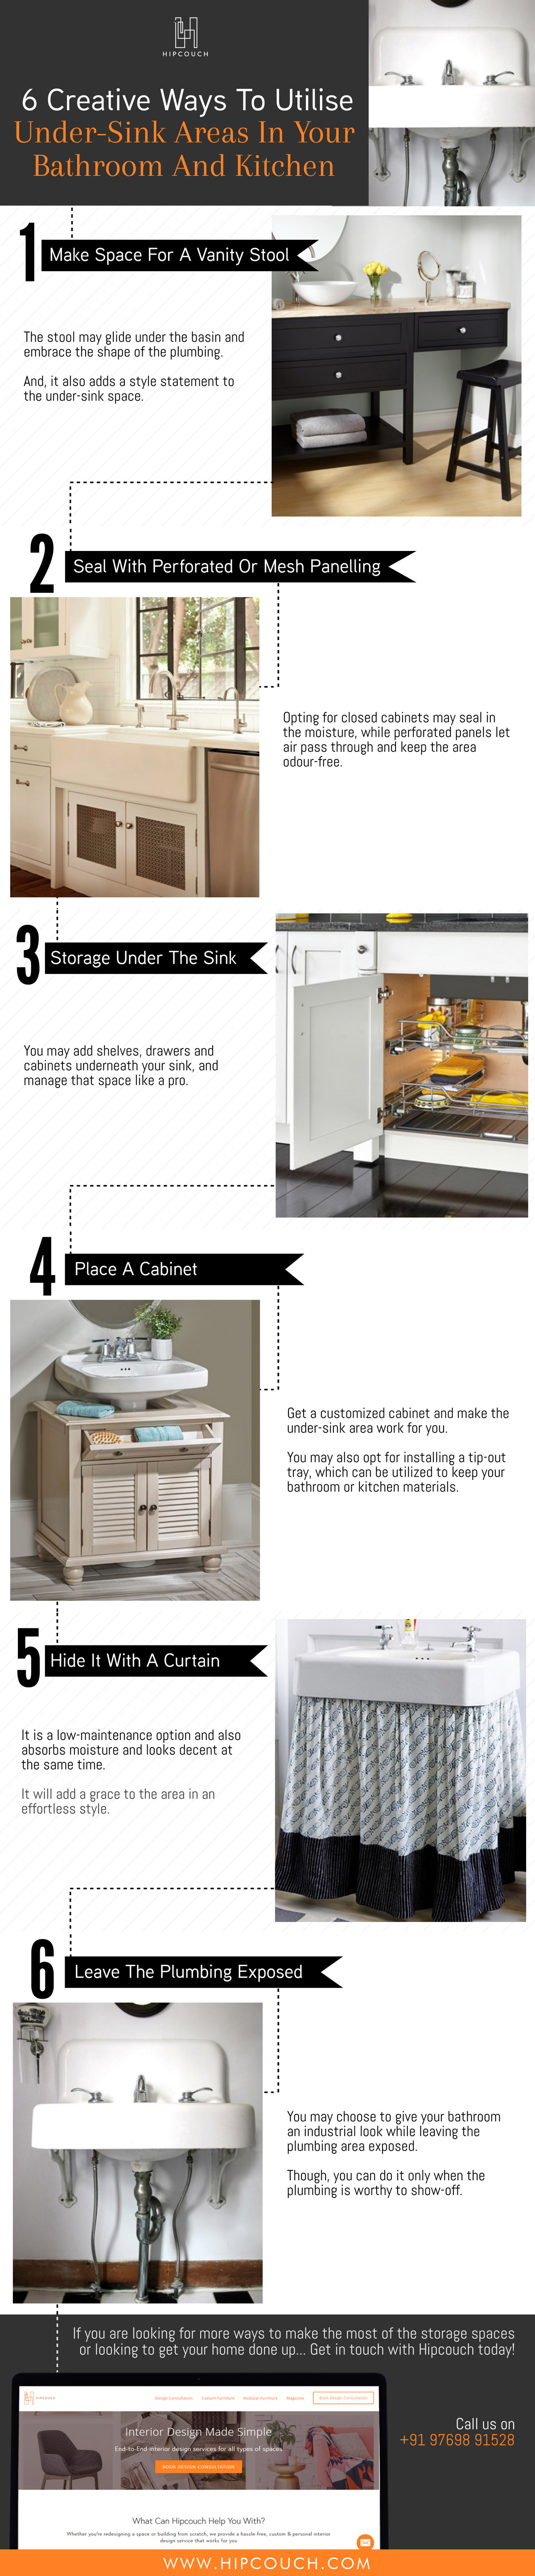 how-to-make-the-most-of-under-sink-areas.jpg